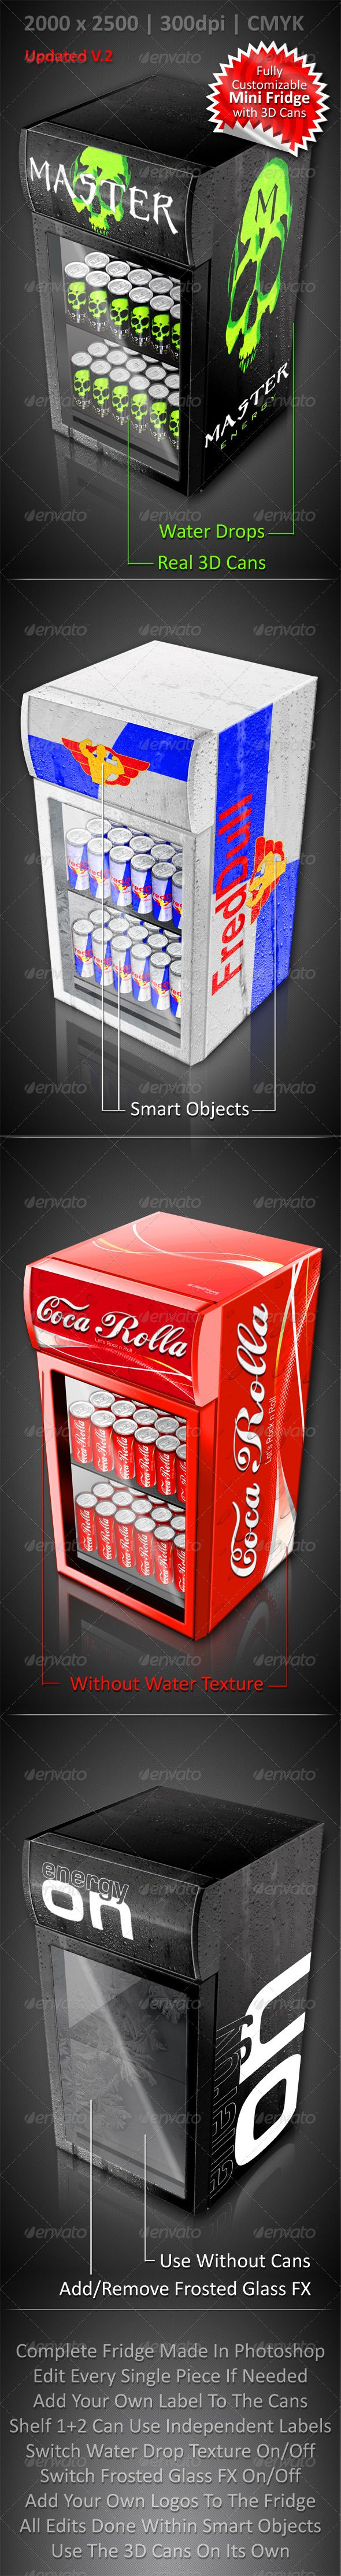 Energy Drink Soda Can Mini Fridge Mockup — Photoshop PSD #refrigerator #red • Available here → https://graphicriver.net/item/energy-drink-soda-can-mini-fridge-mockup/3147966?ref=pxcr